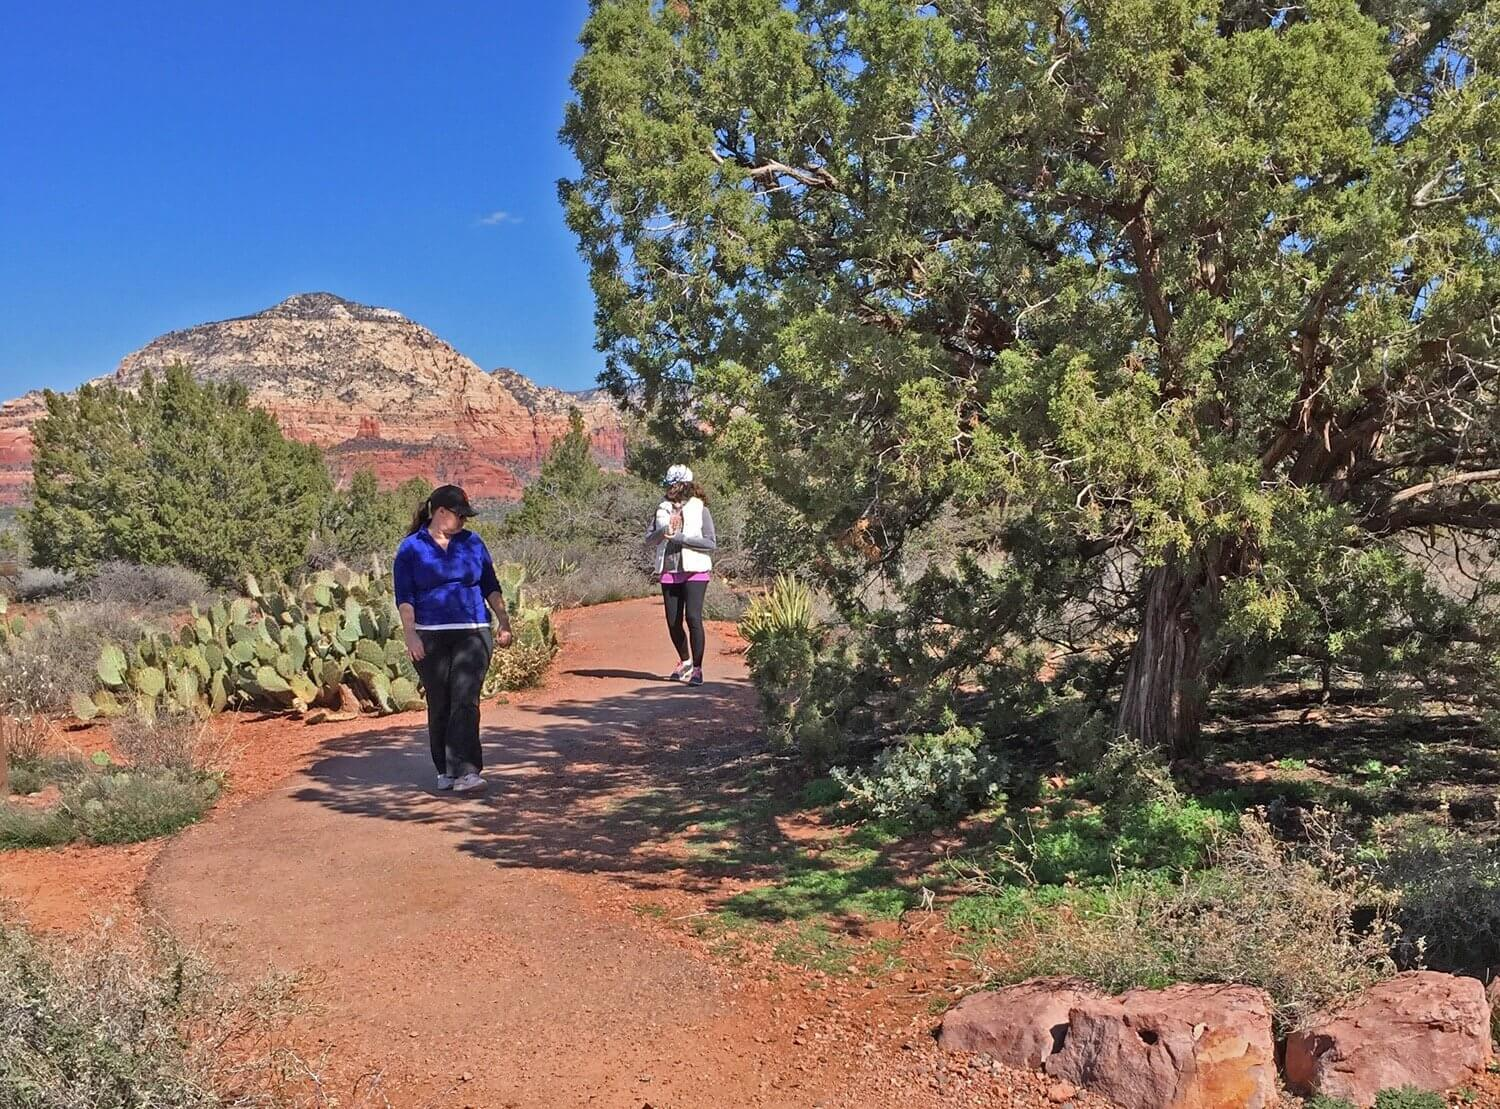 2 women walking on a red dirt trail. Shows the site where we do our sedona vortex-sacred and ancestors sites program.